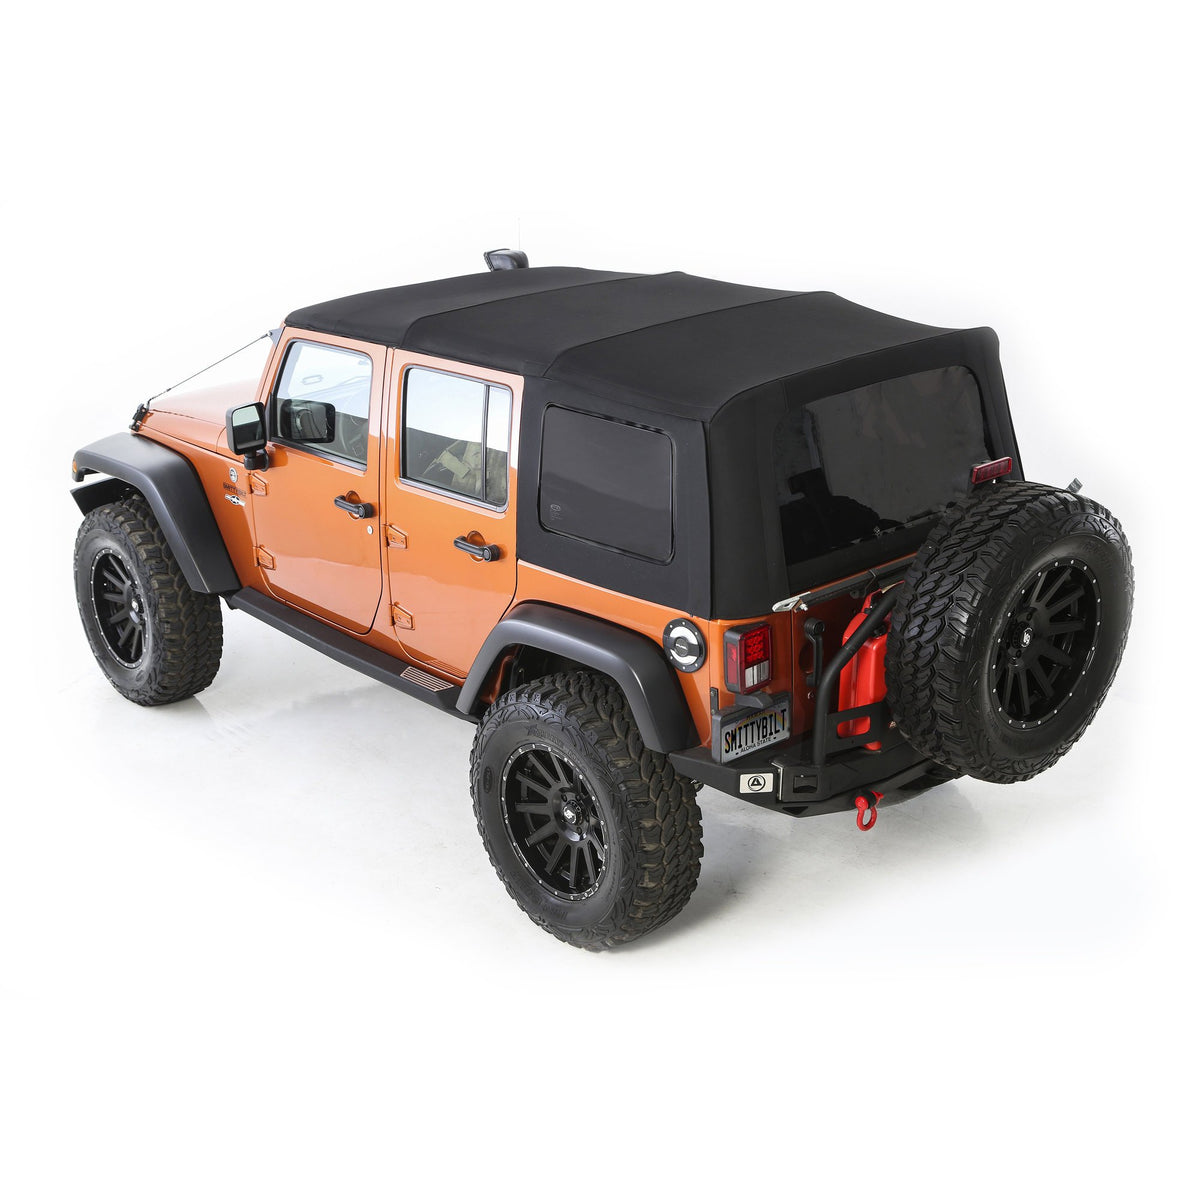 Smittybilt Premium Replacement Canvas Soft Top with Tinted Windows for 07-18 Jeep Wrangler Unlimited 4 Door